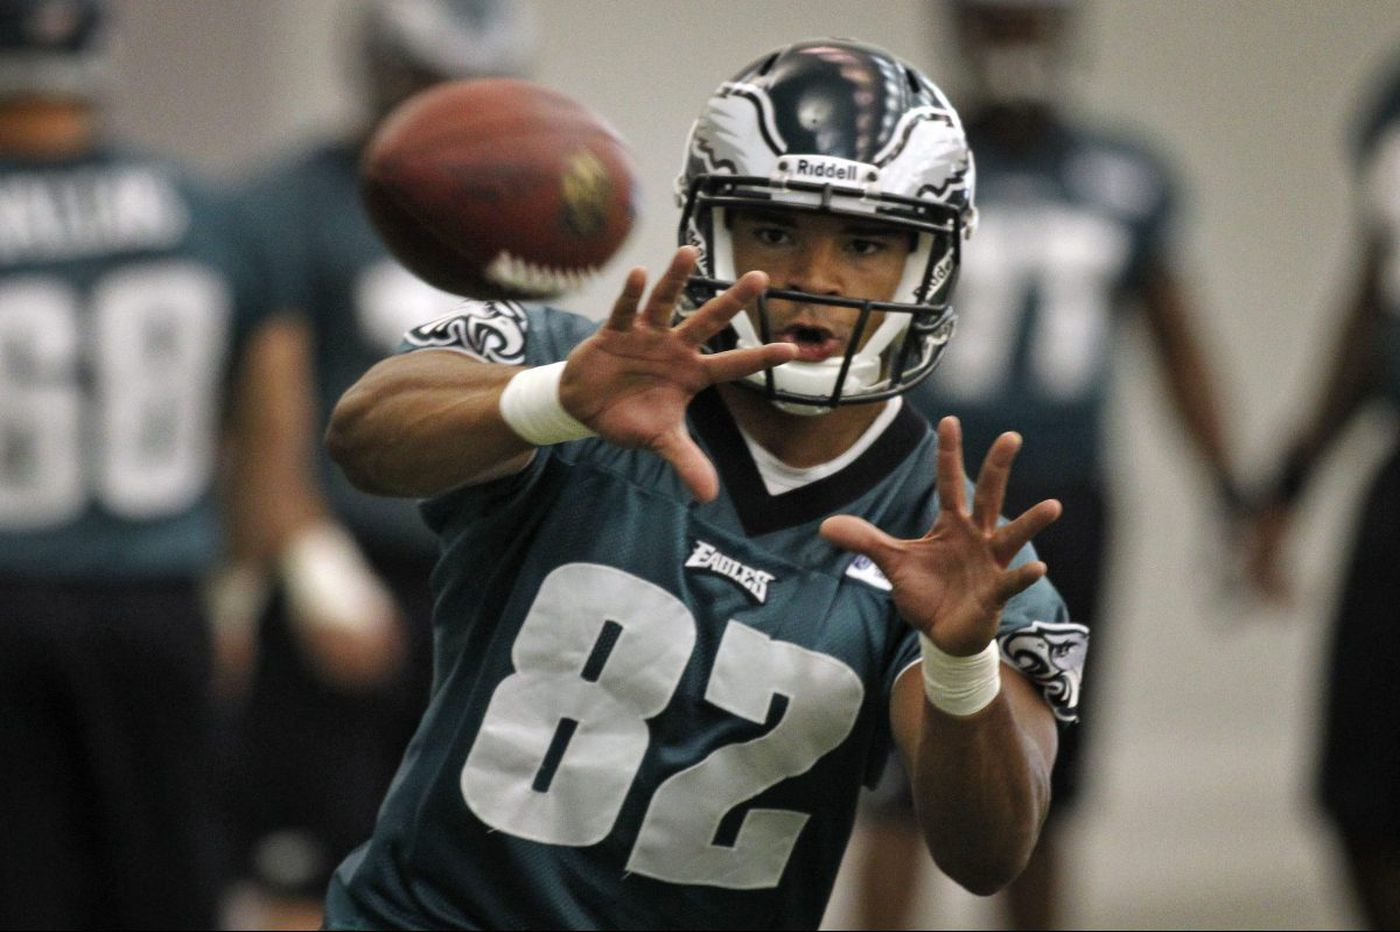 Report: Former Eagle to compete on upcoming season of 'The Bachelorette'